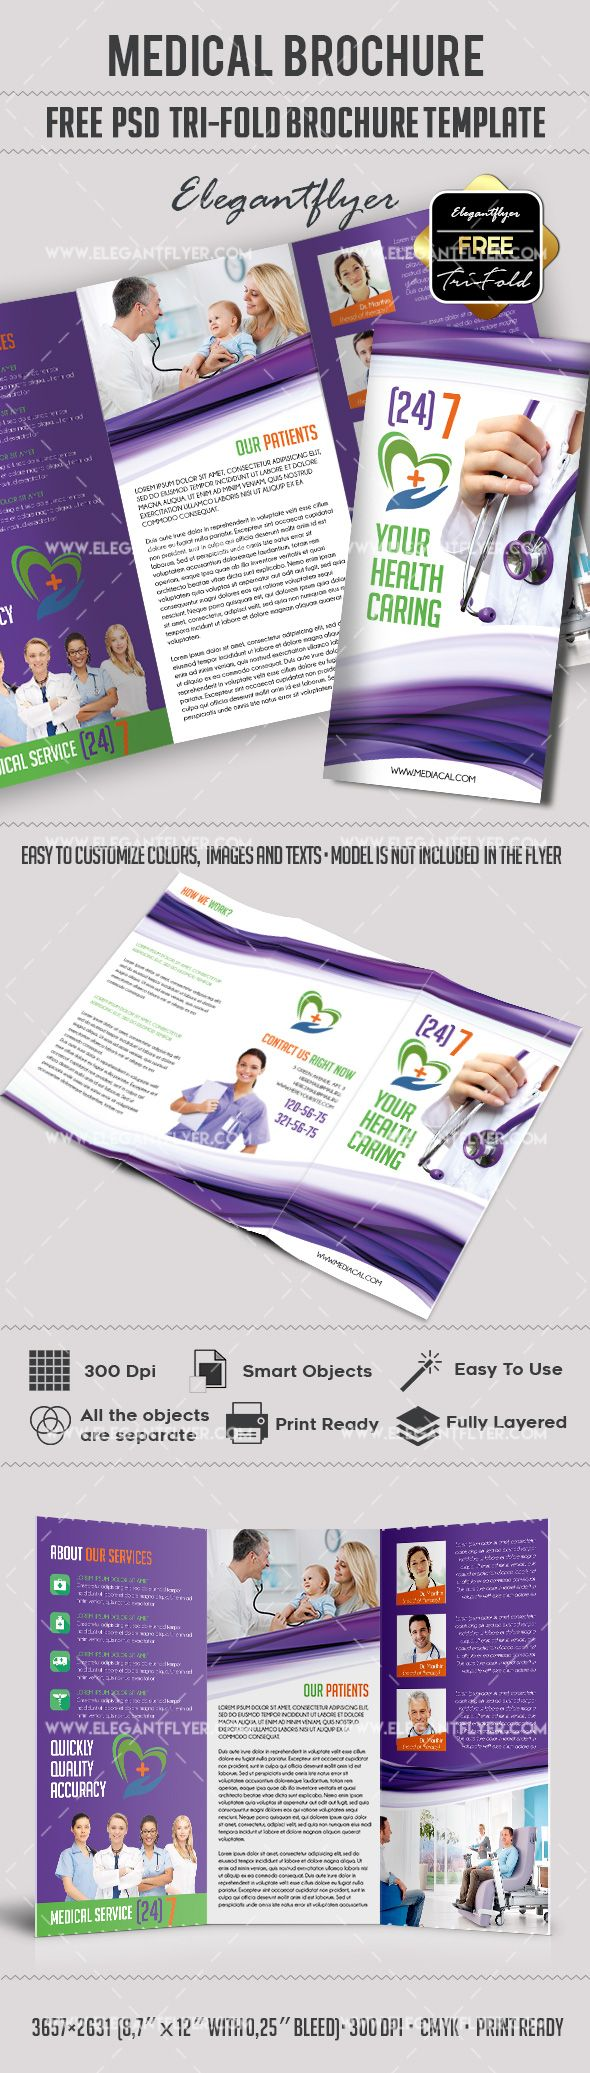 99 best free brochure templates images on pinterest brochures medical free tri fold psd brochure template httpselegantflyer pronofoot35fo Images